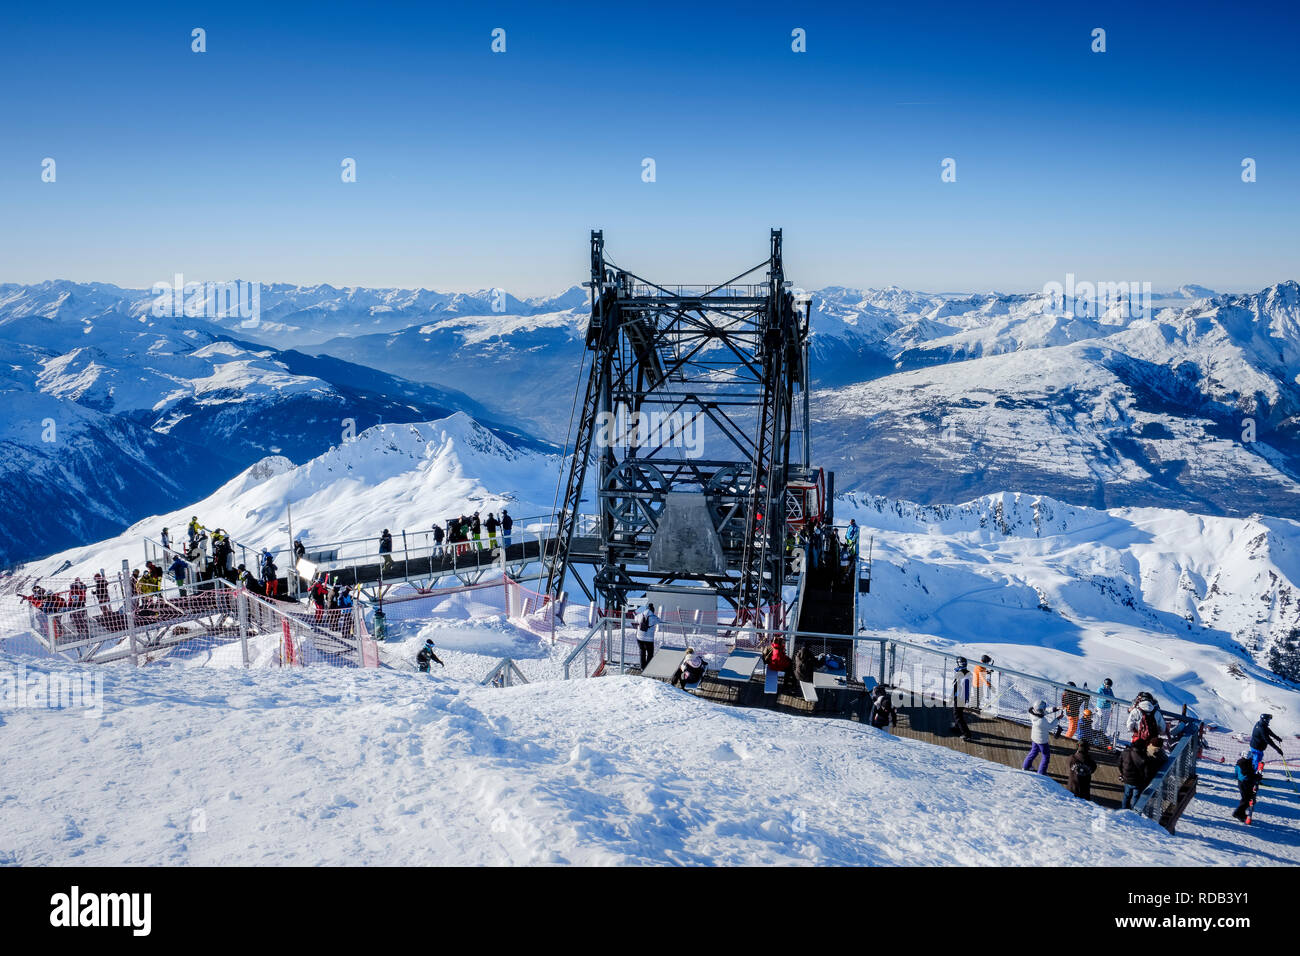 The lift station at Aiguille Rouge, with people enjoying the panoramic view of the Alps. - Stock Image